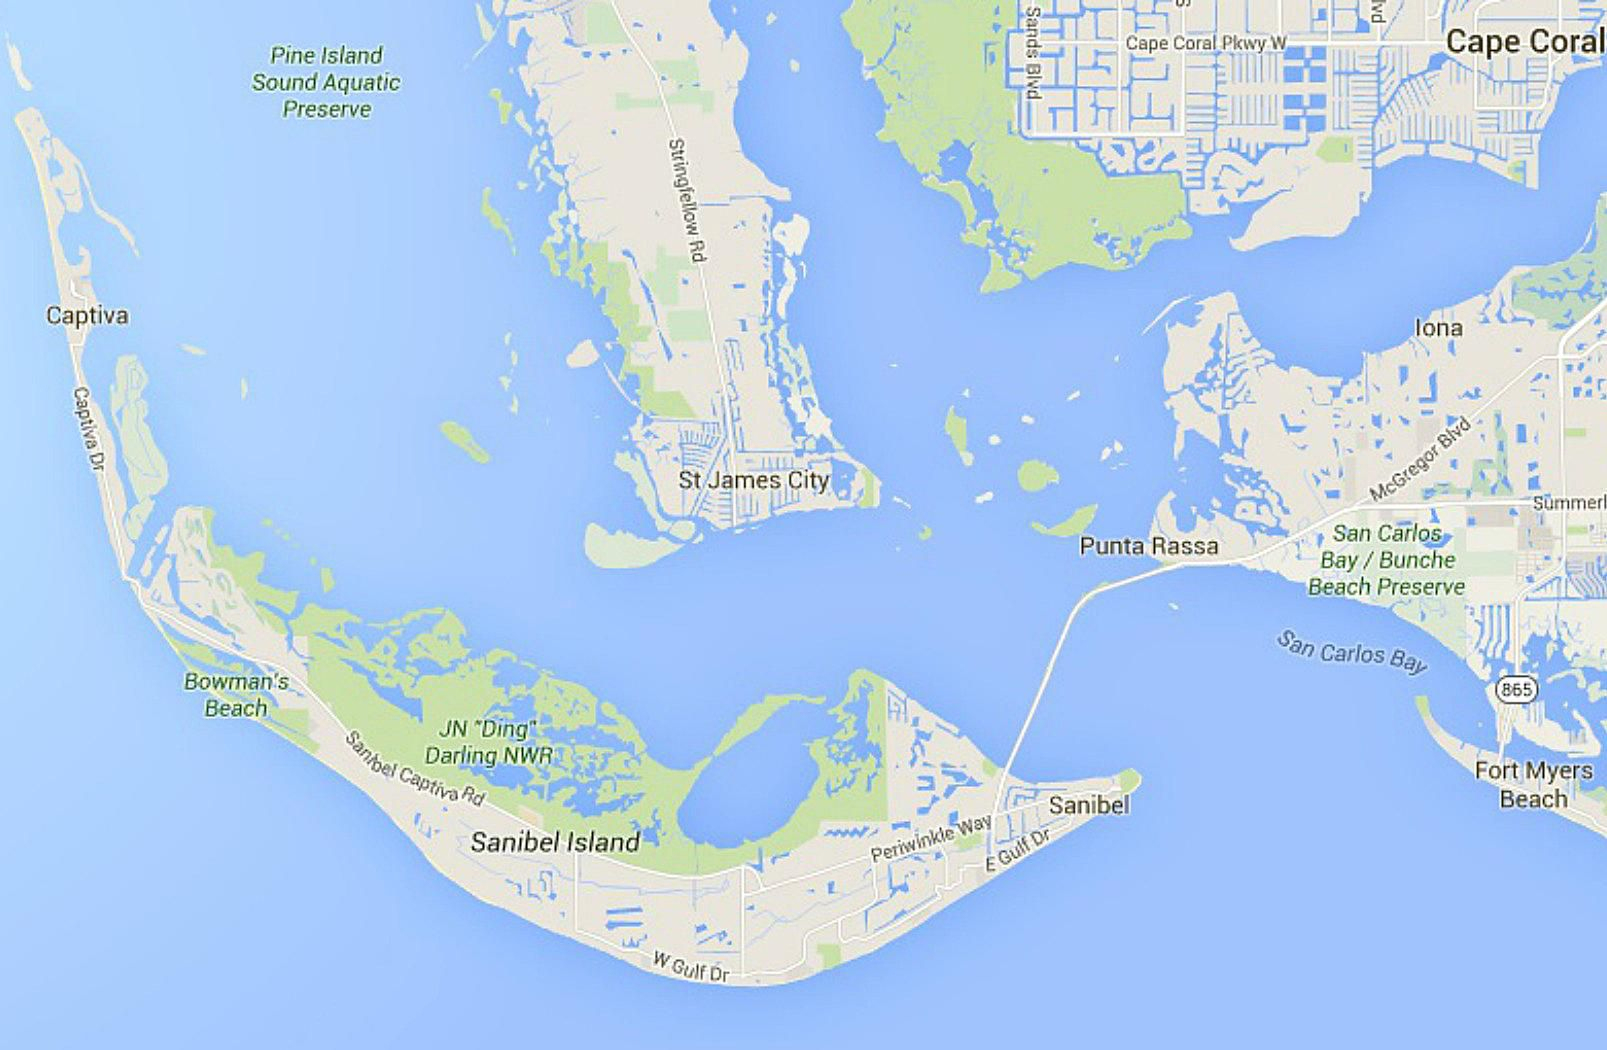 Maps Of Florida: Orlando, Tampa, Miami, Keys, And More - Annabelle Island Florida Map